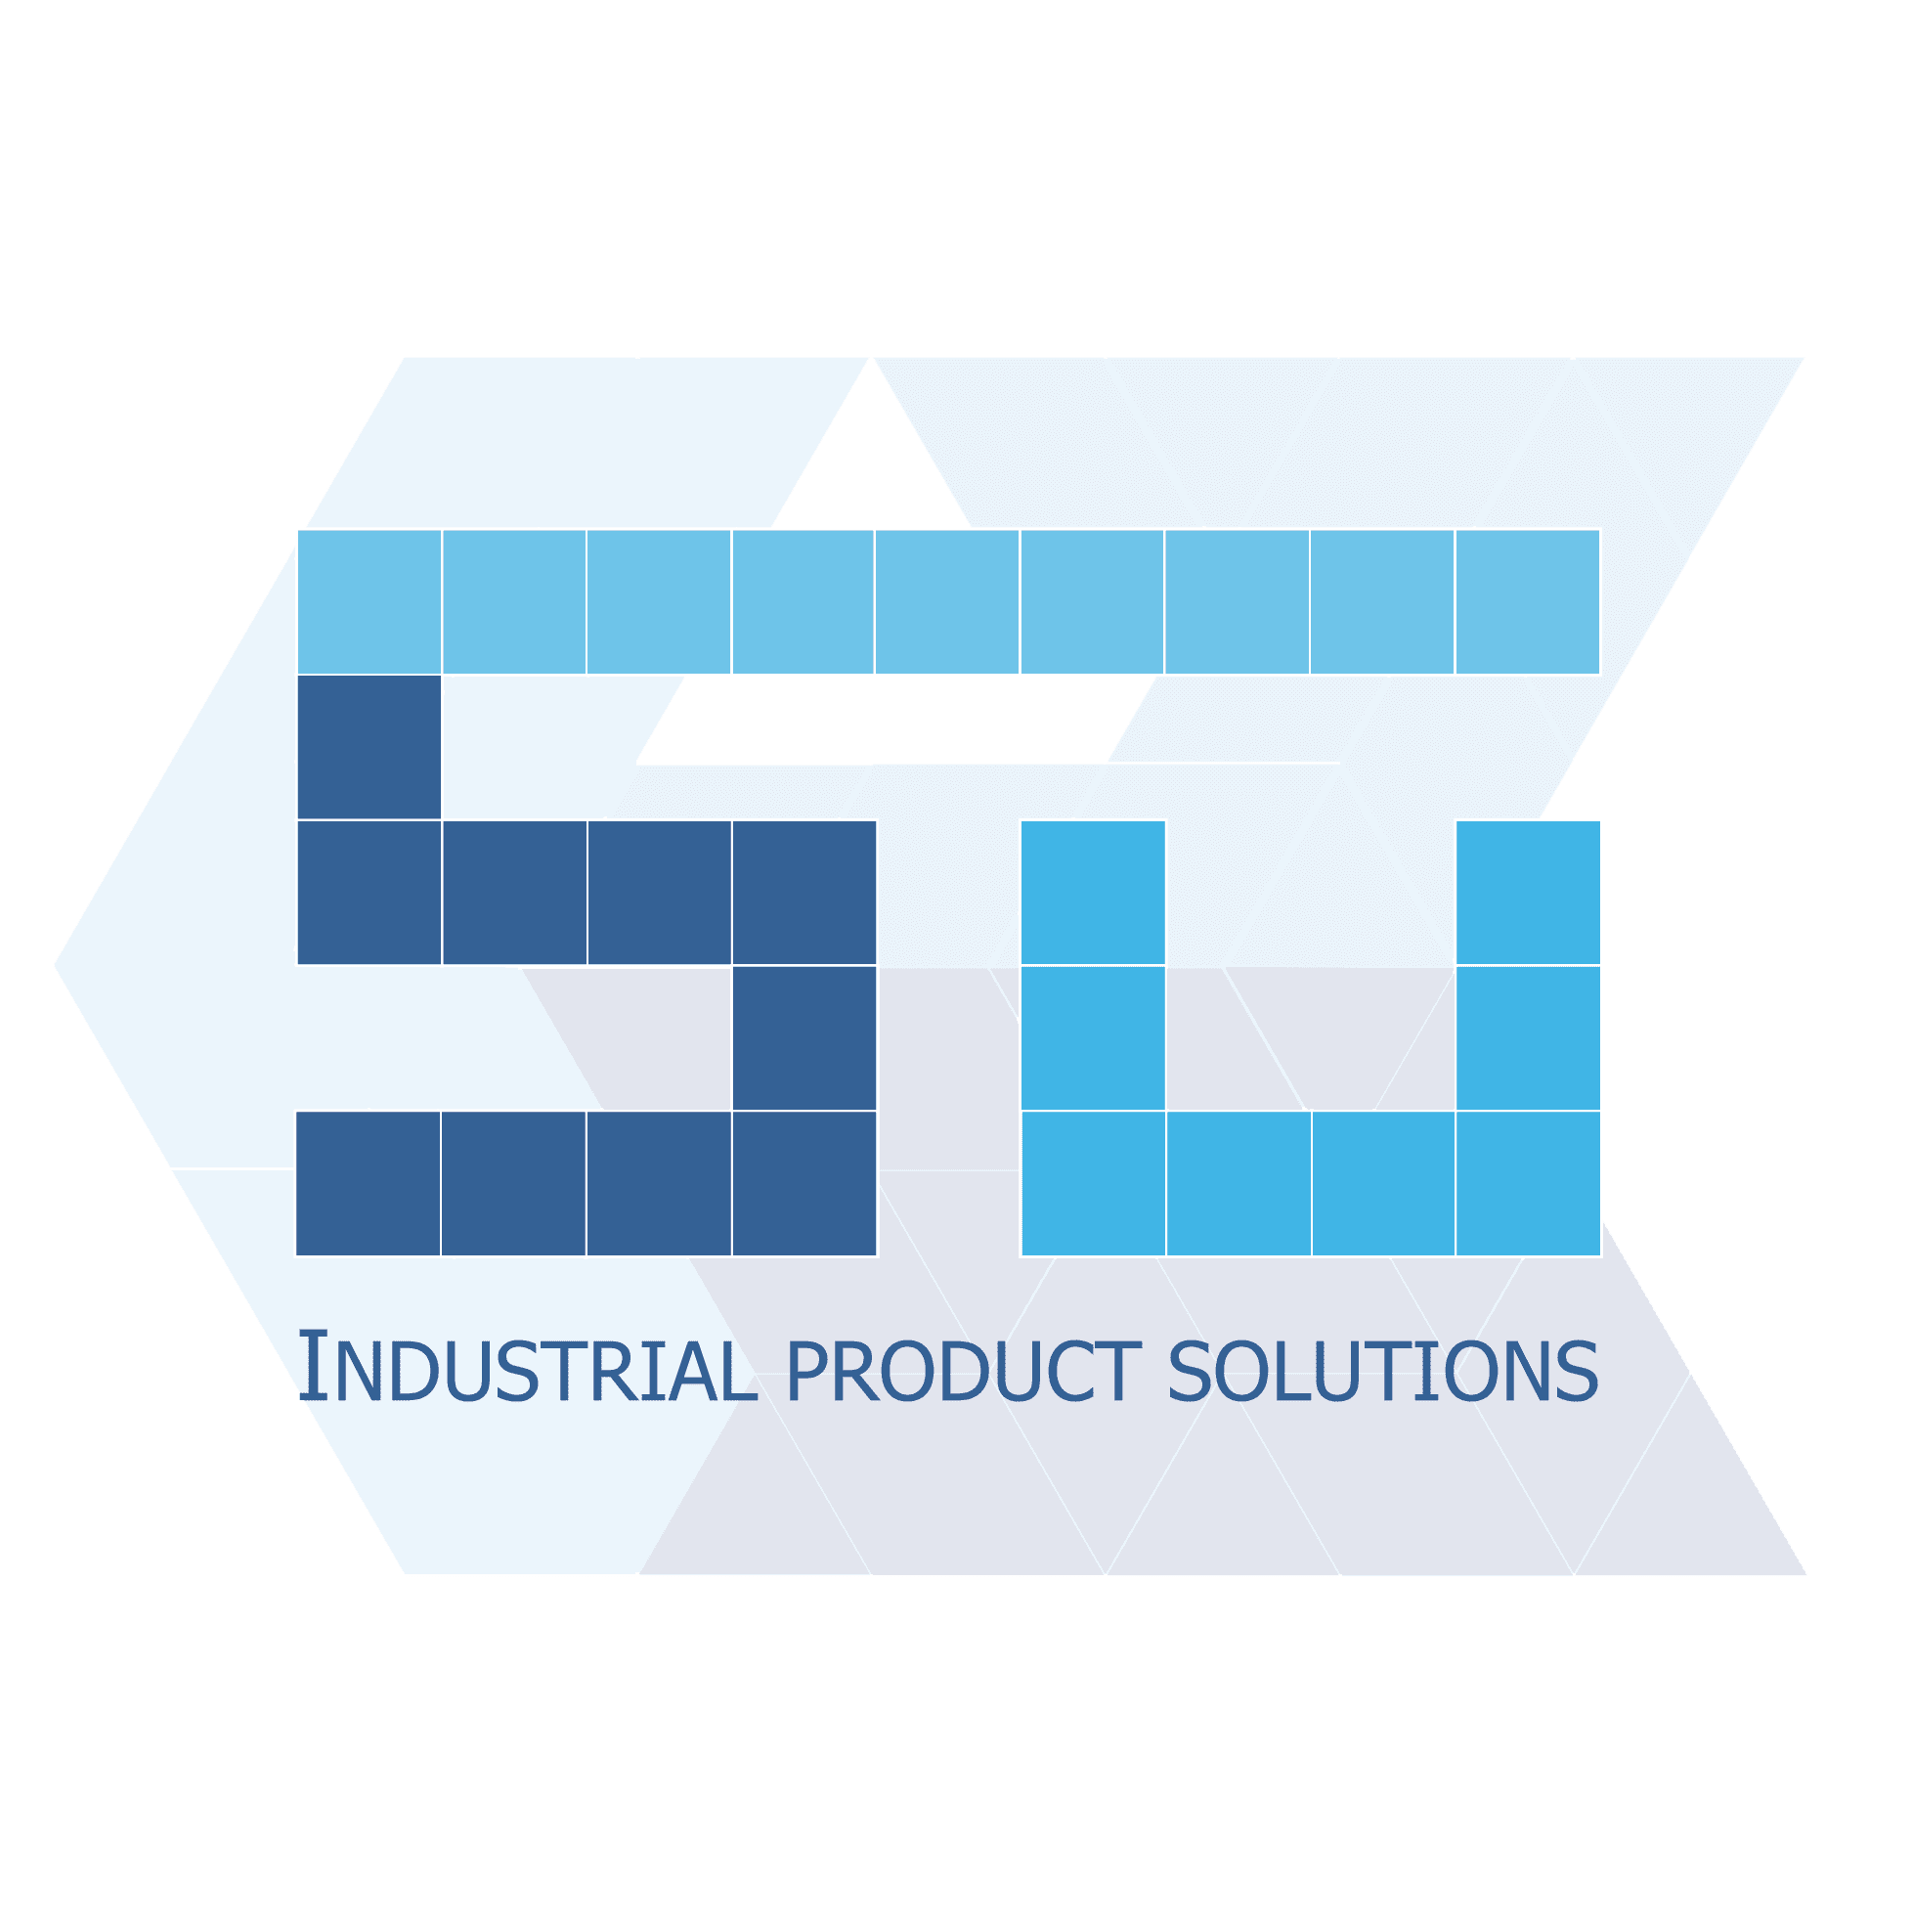 Industrial Producty Solutions